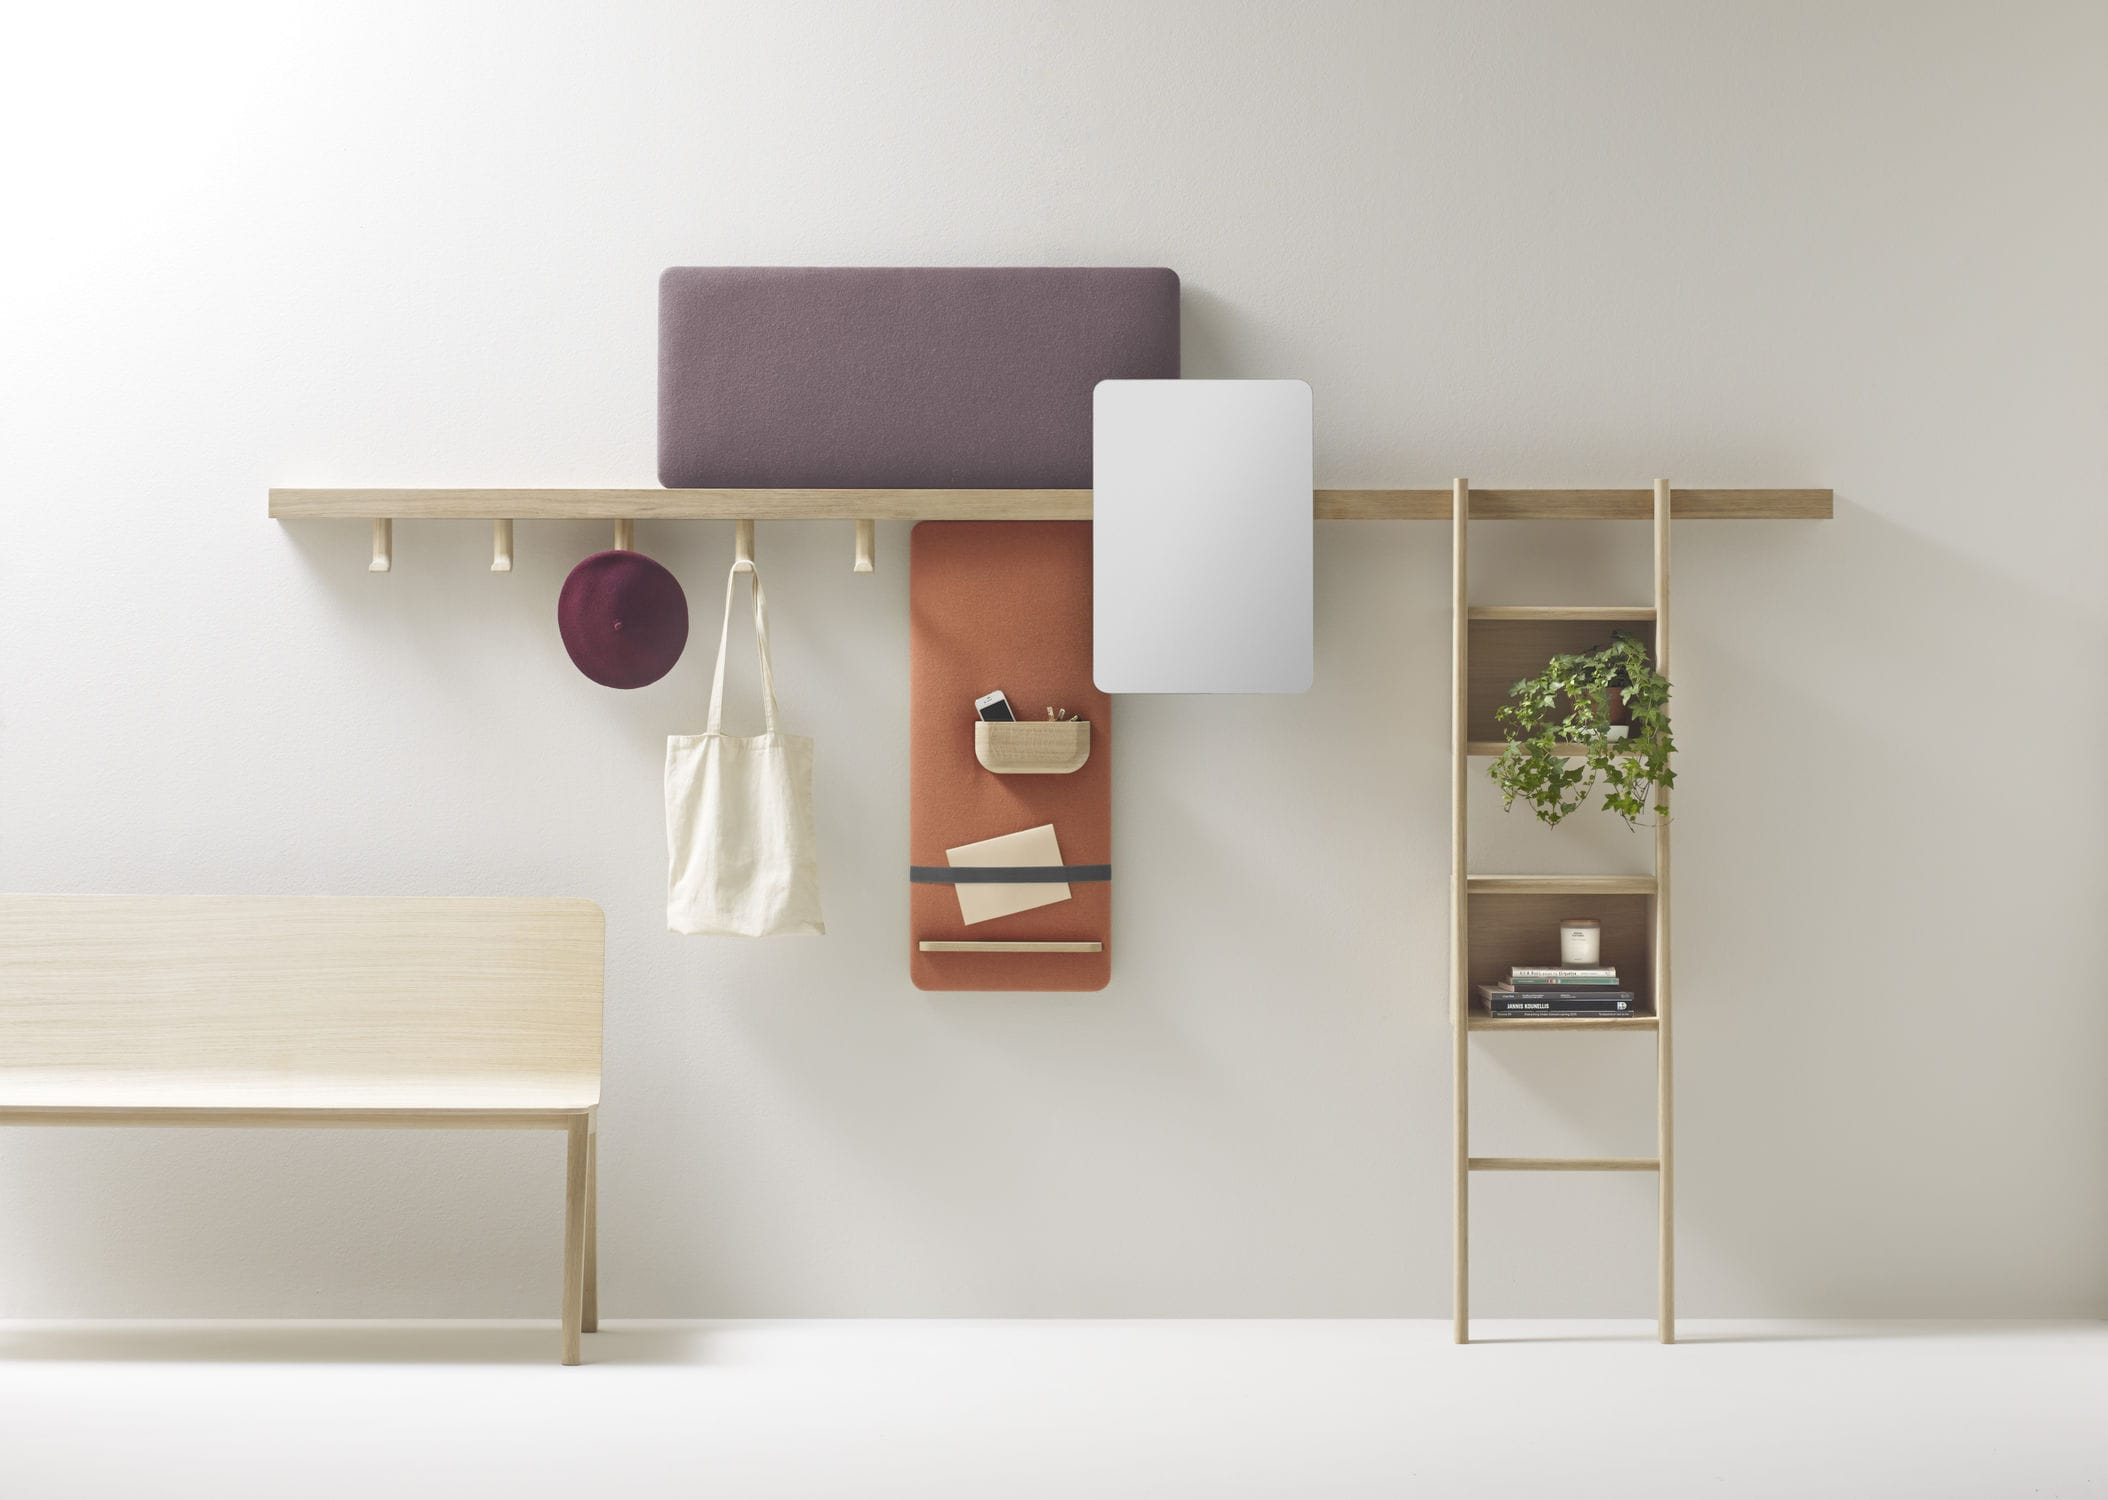 wallmounted shelving system  contemporary  solid wood  -  wallmounted shelving system  contemporary  solid wood  residentialzutik by jean louis